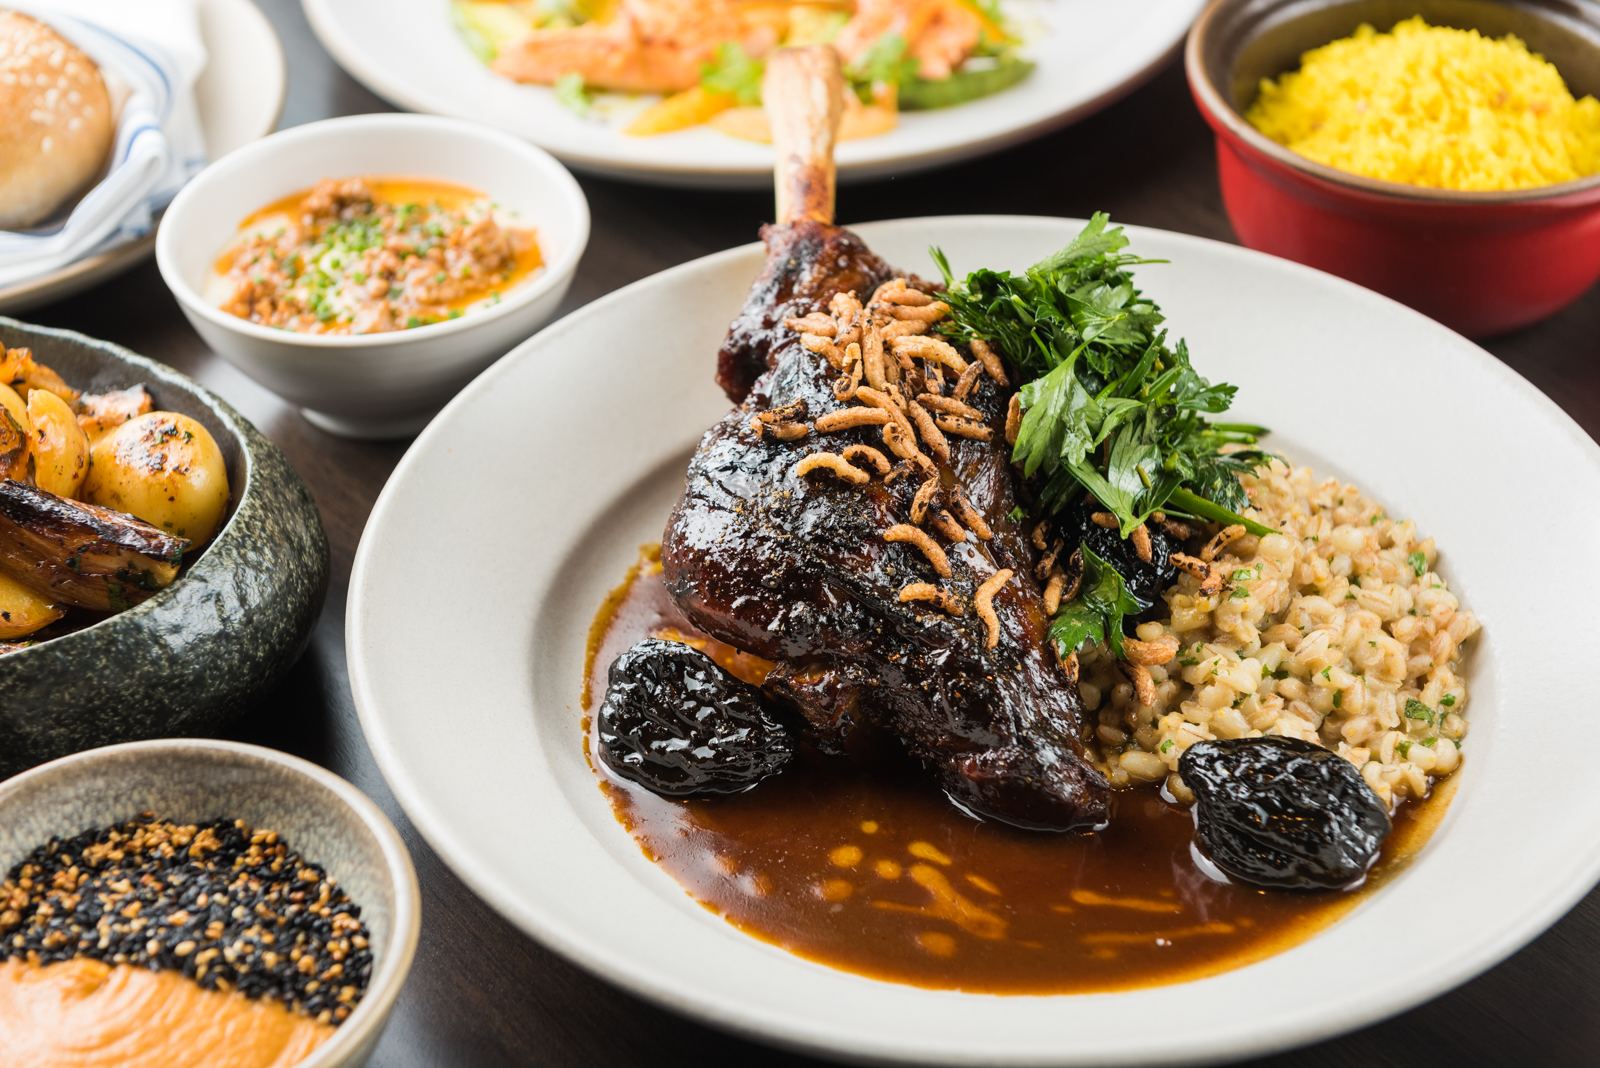 Braised lamb shank and sides at the newly opened Aziza